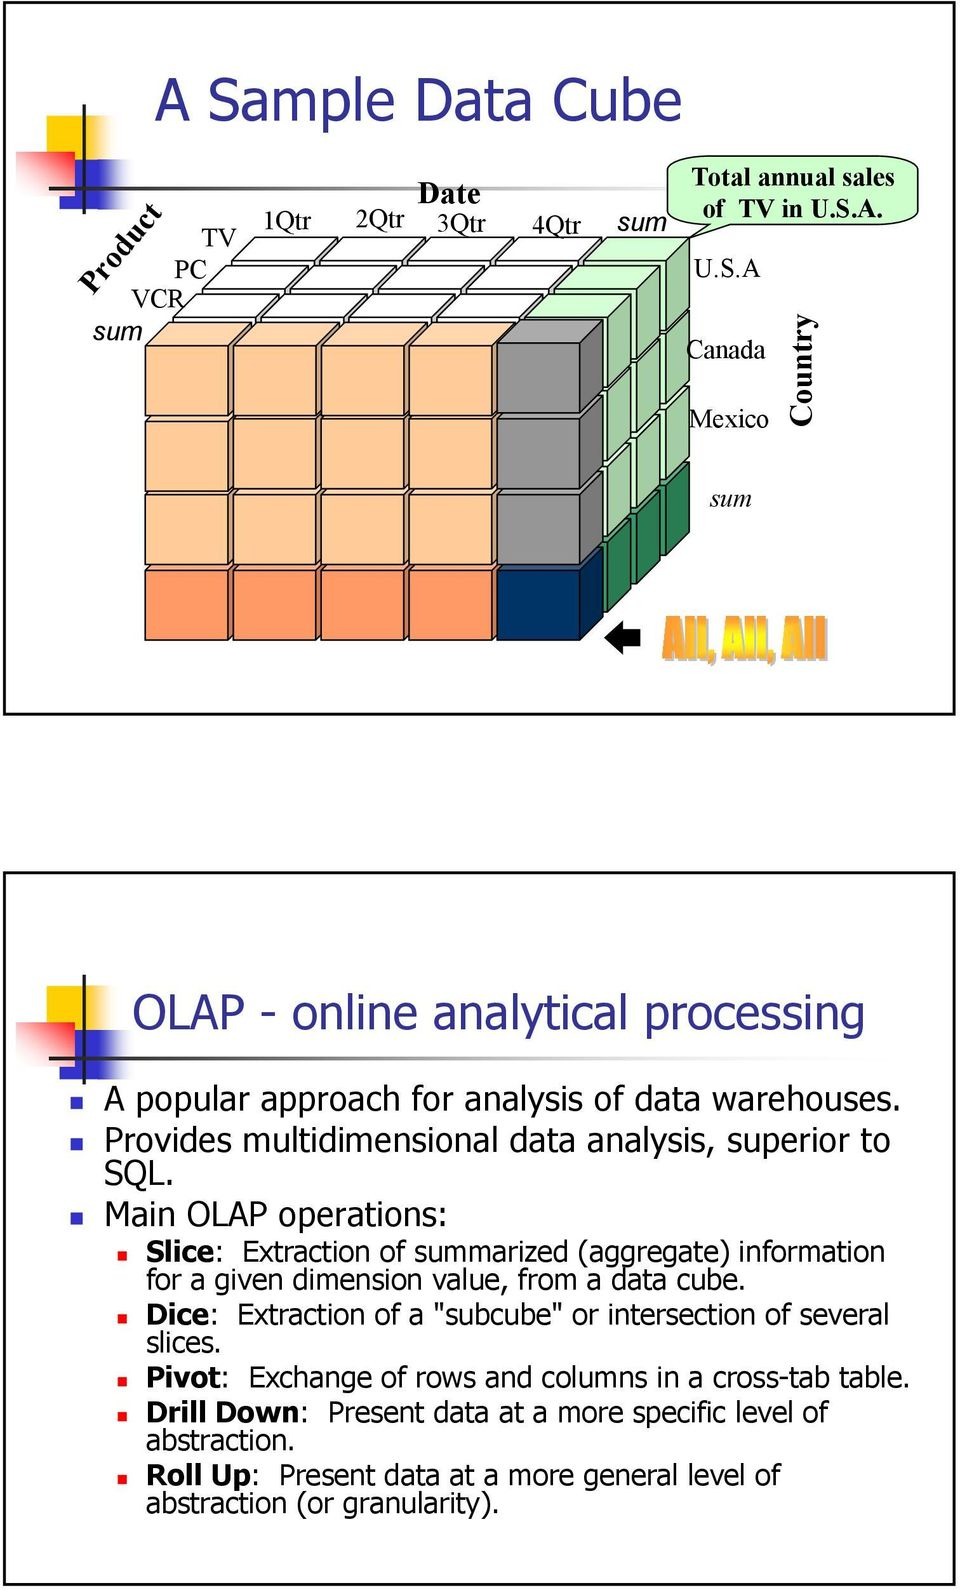 Main OLAP operations: Slice: Extraction of summarized (aggregate) information for a given dimension value, from a data cube.